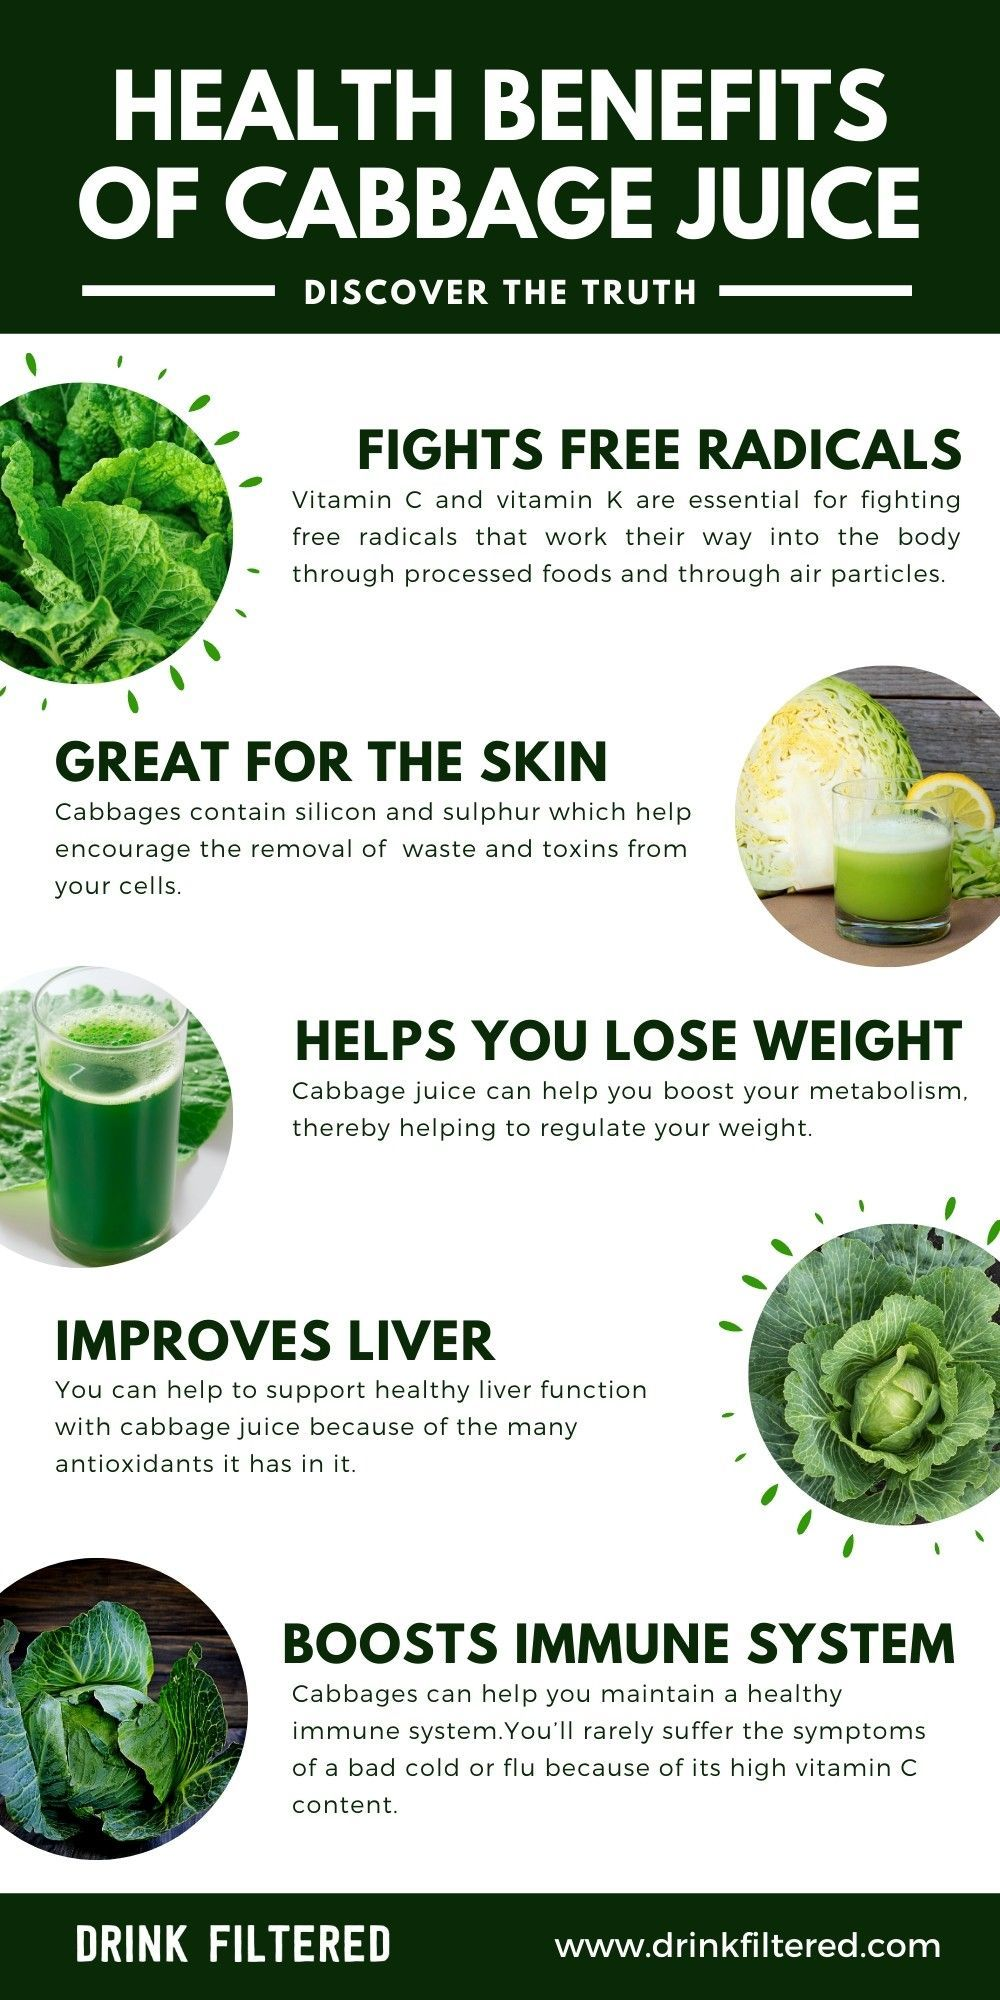 health benefits of cabbage juice in 2020 | cabbage benefits